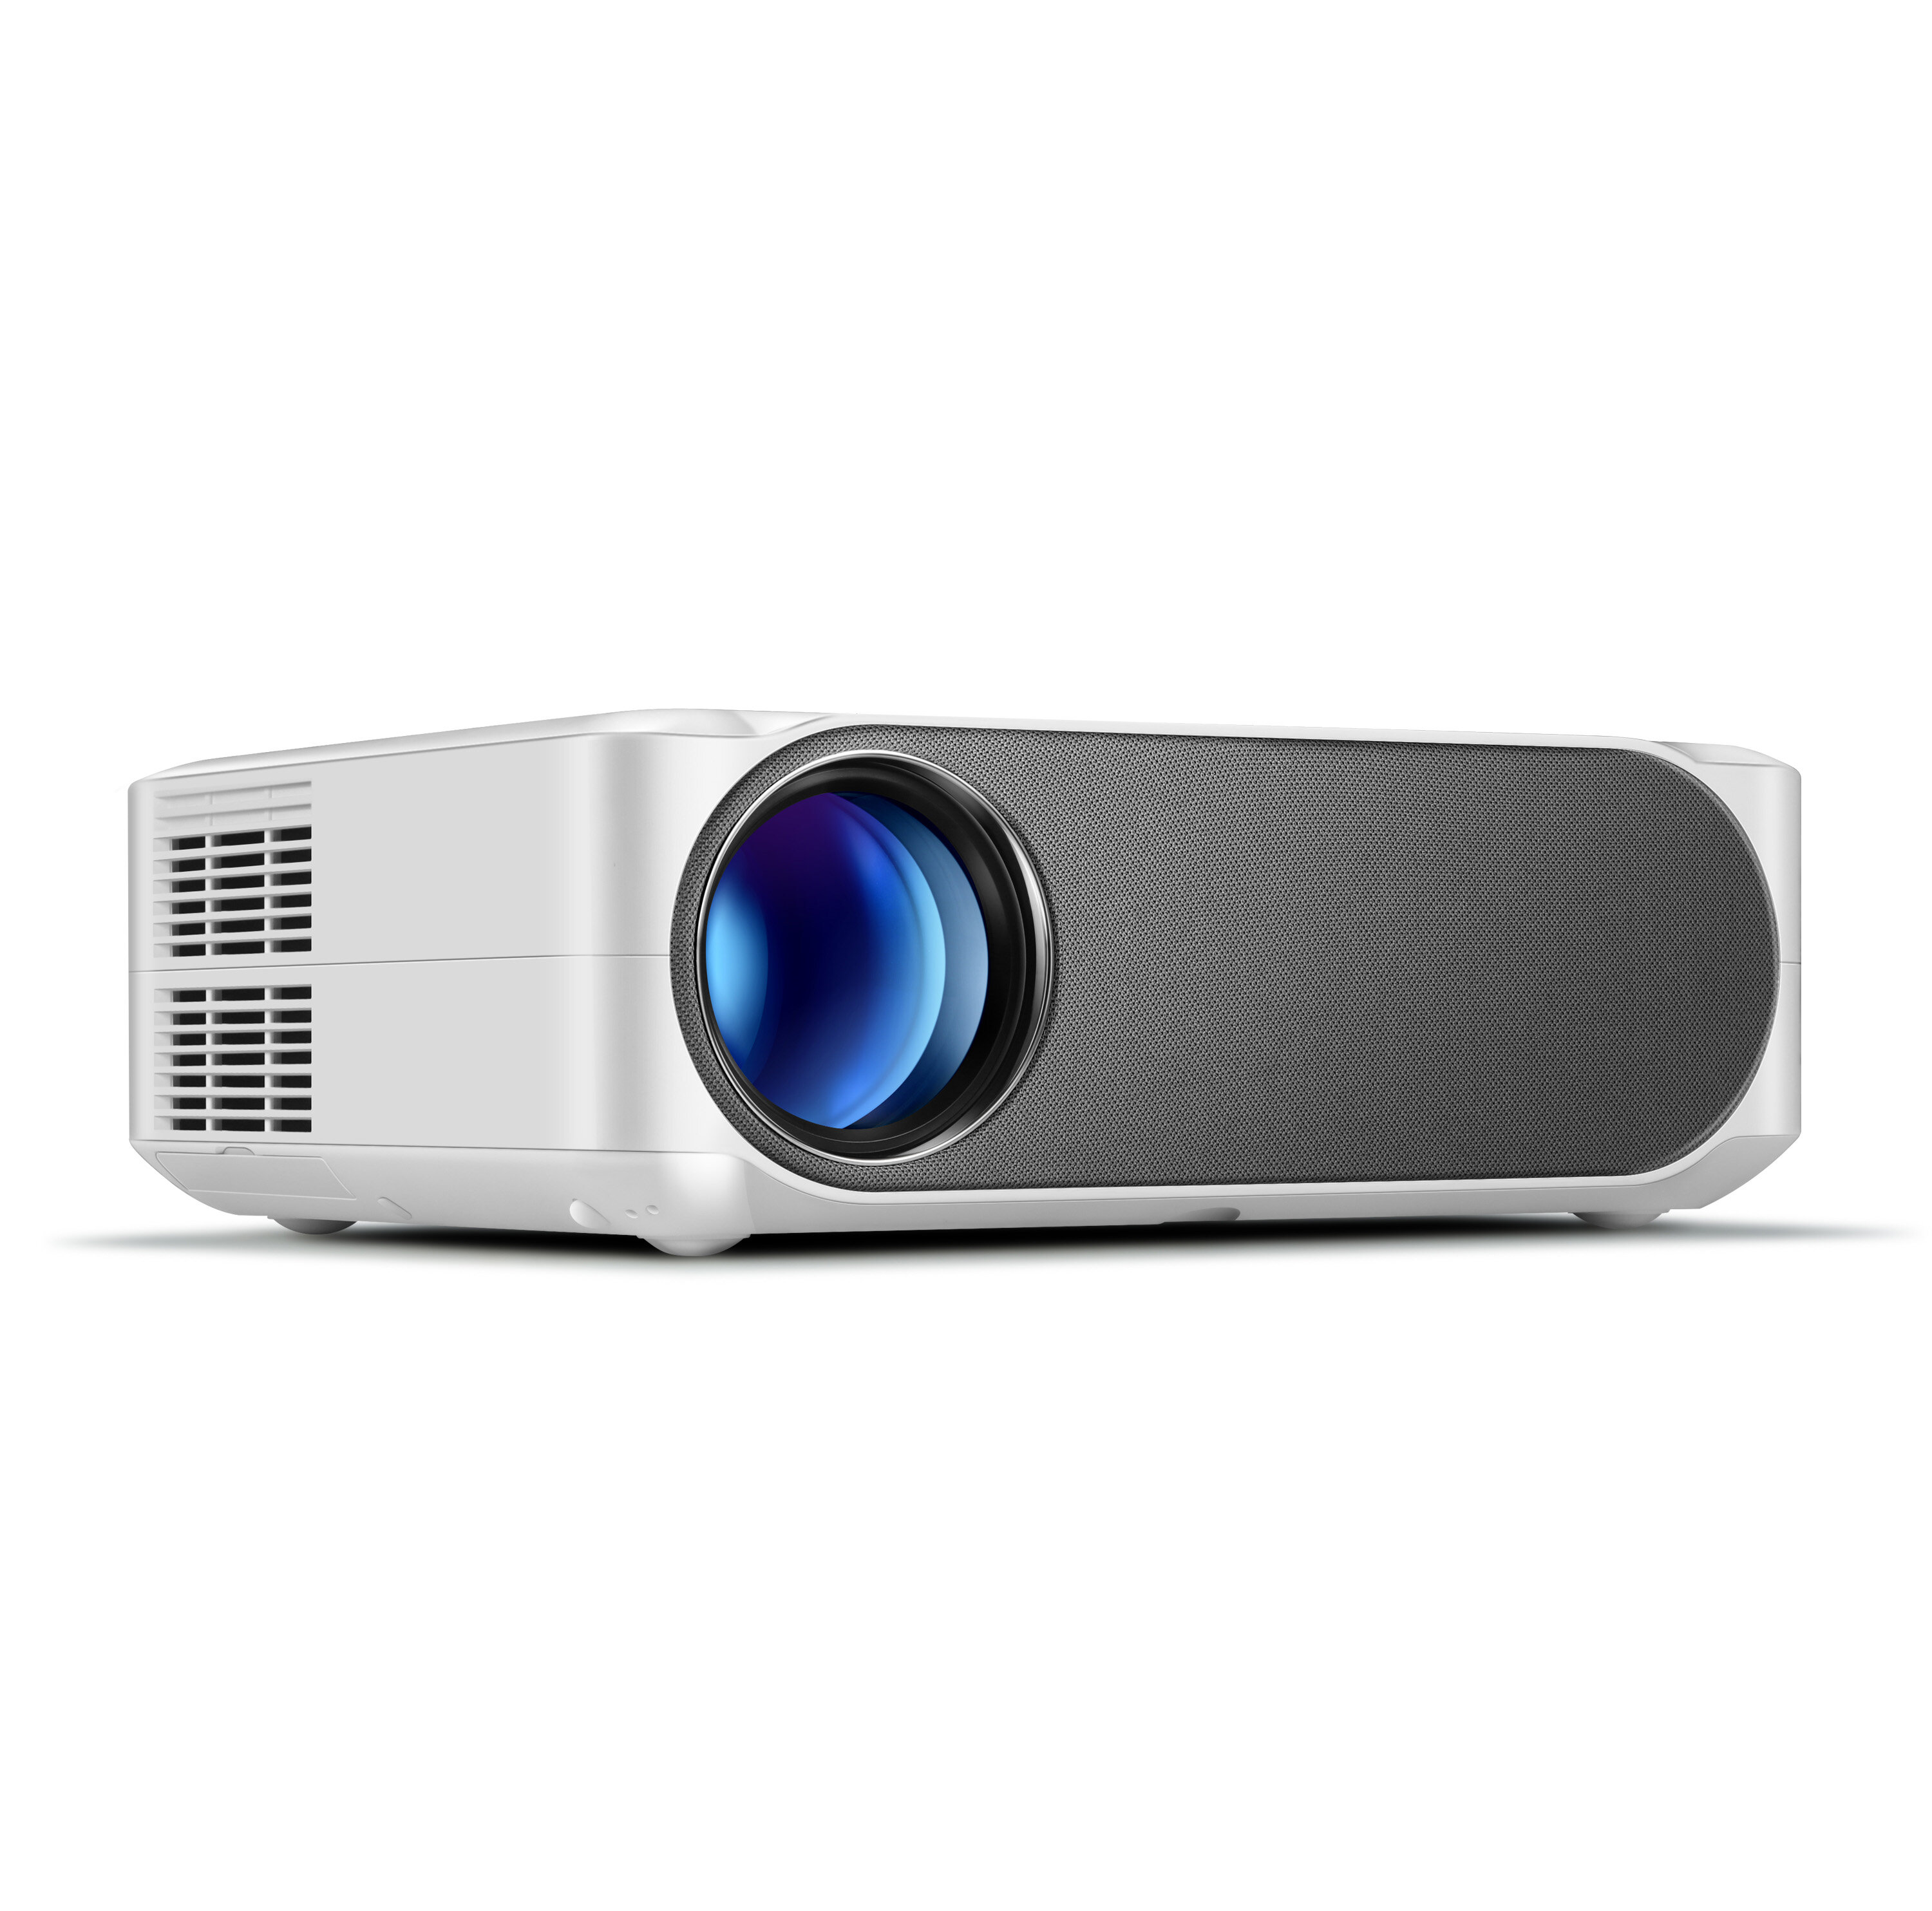 AUN AKEY6 Projector Full HD 1080P Resolution 5800 Lumens Built in Multimedia System Video Beamer LED Projector for Home Theater